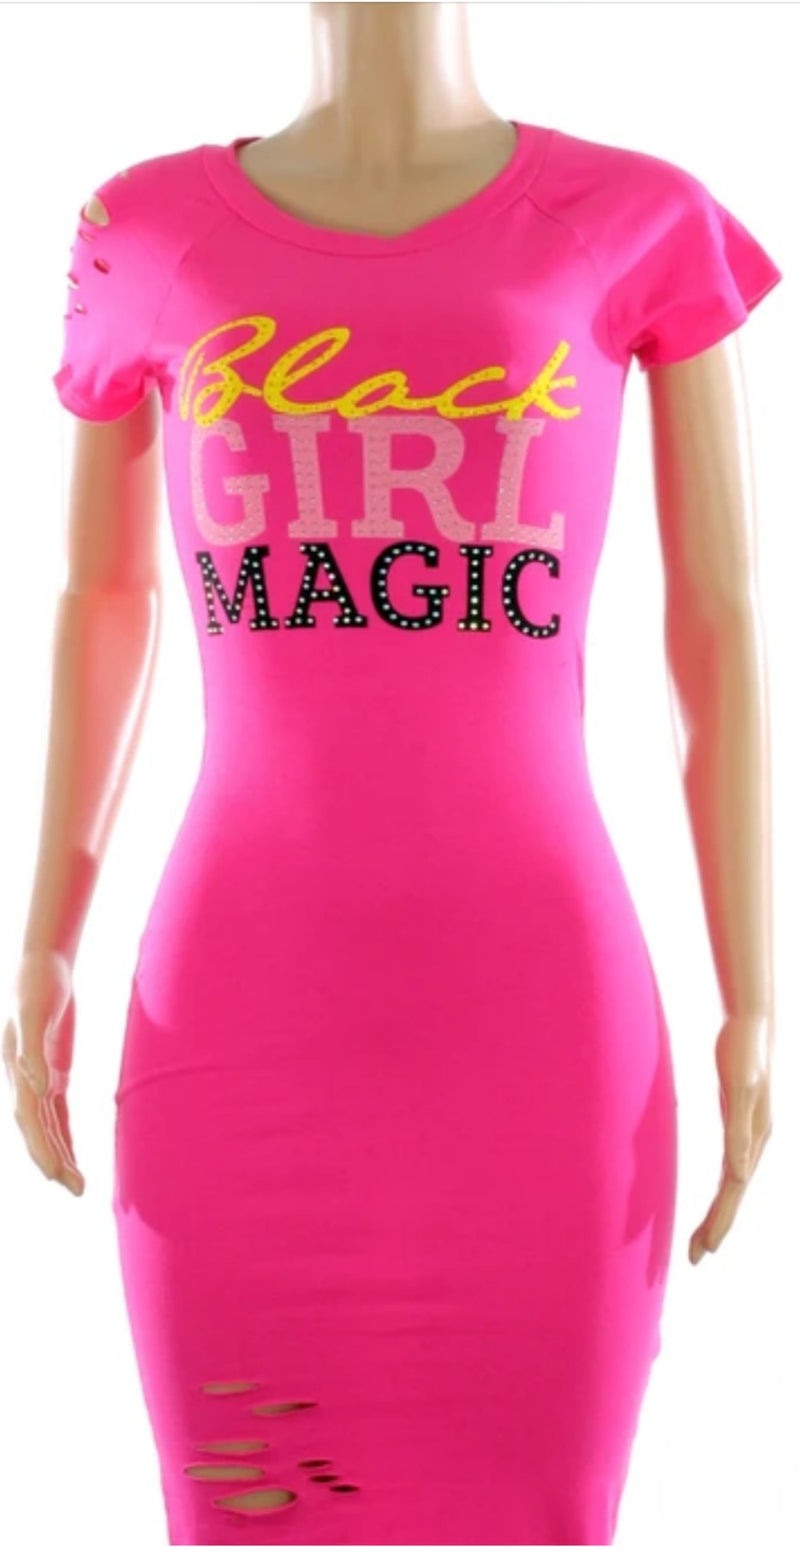 Black Girl Magic T-Shirt  Dress